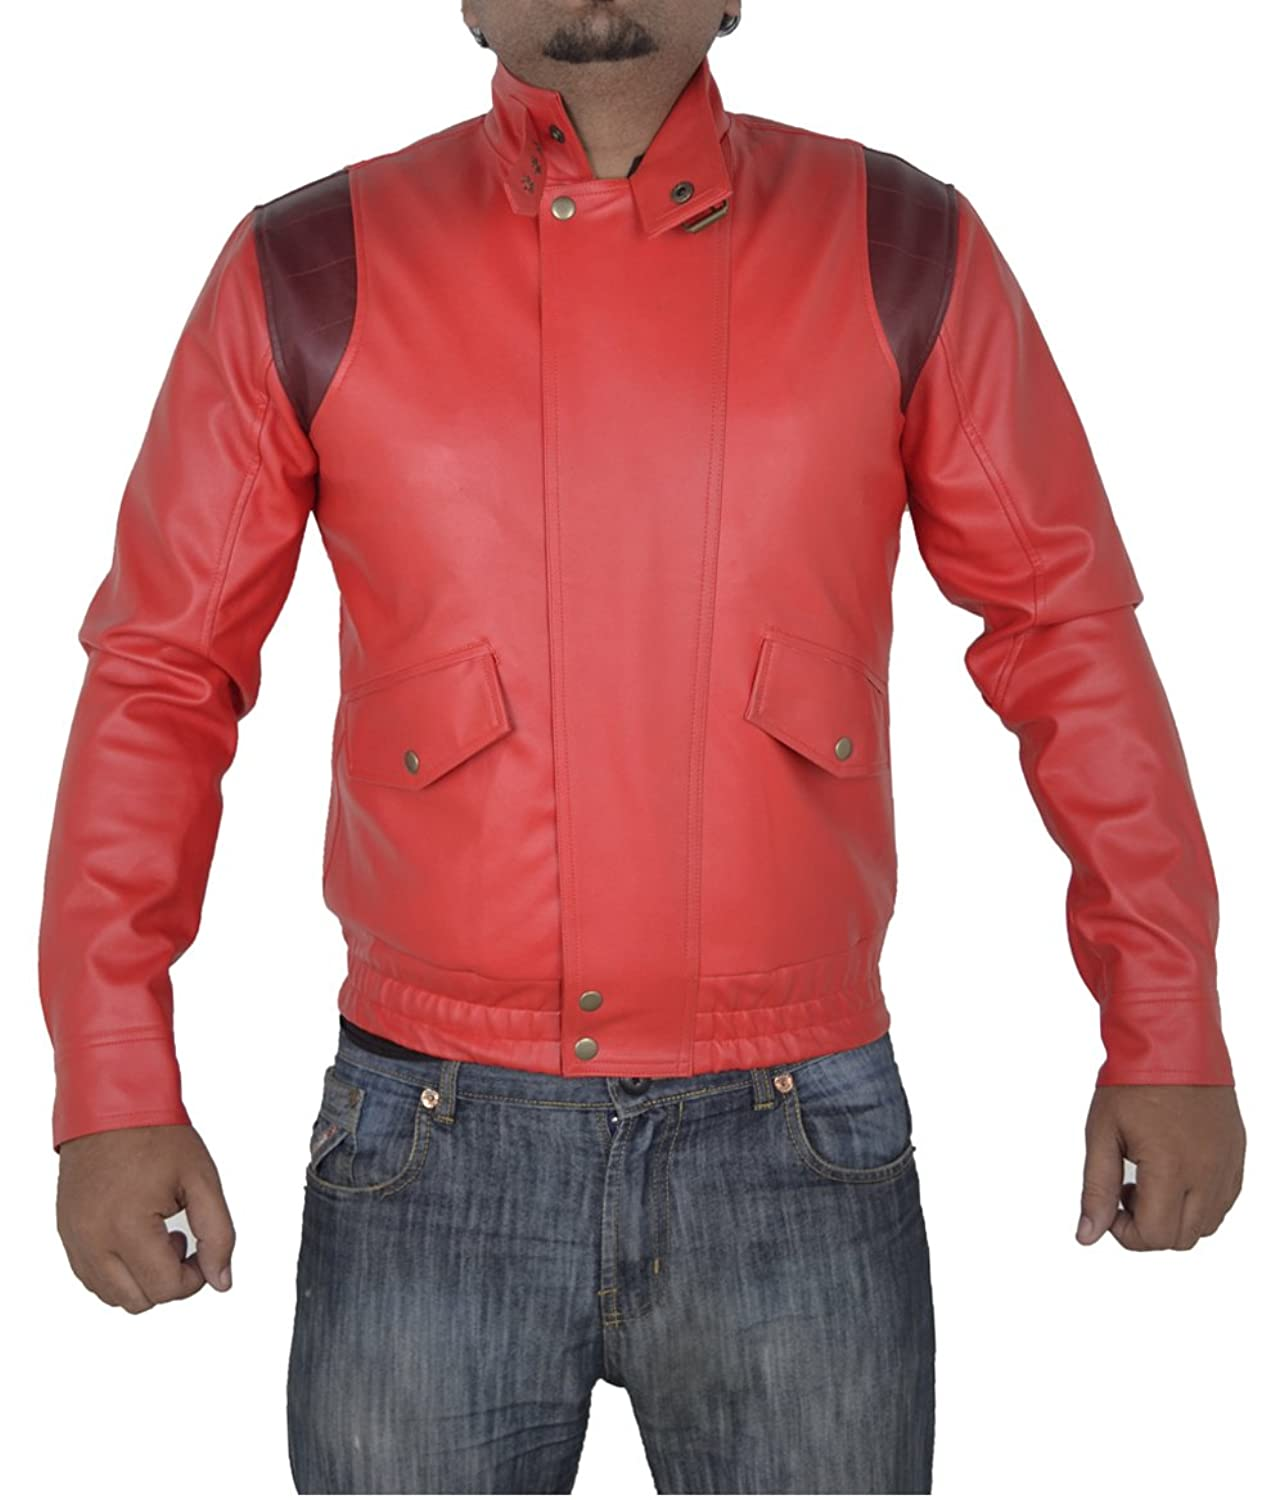 Akira Manga V3 Full Red Faux Leather Jacket With Capsule only